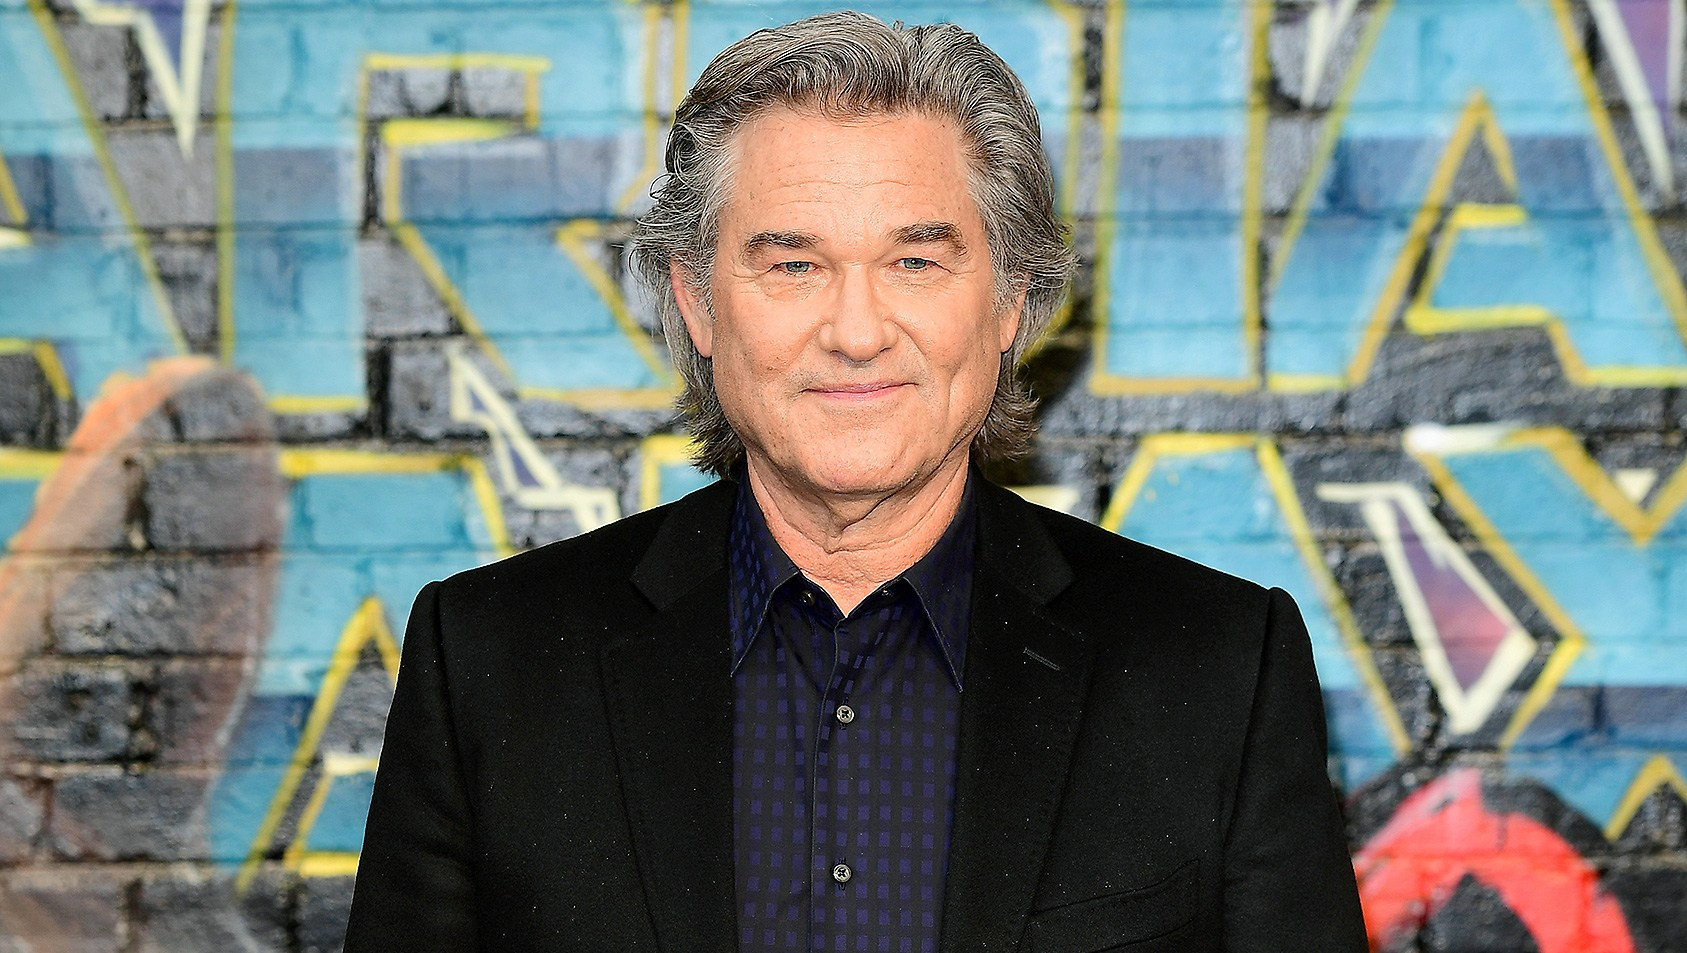 Kurt Russell, Defend, James Gunn, Rape, Pedophilia